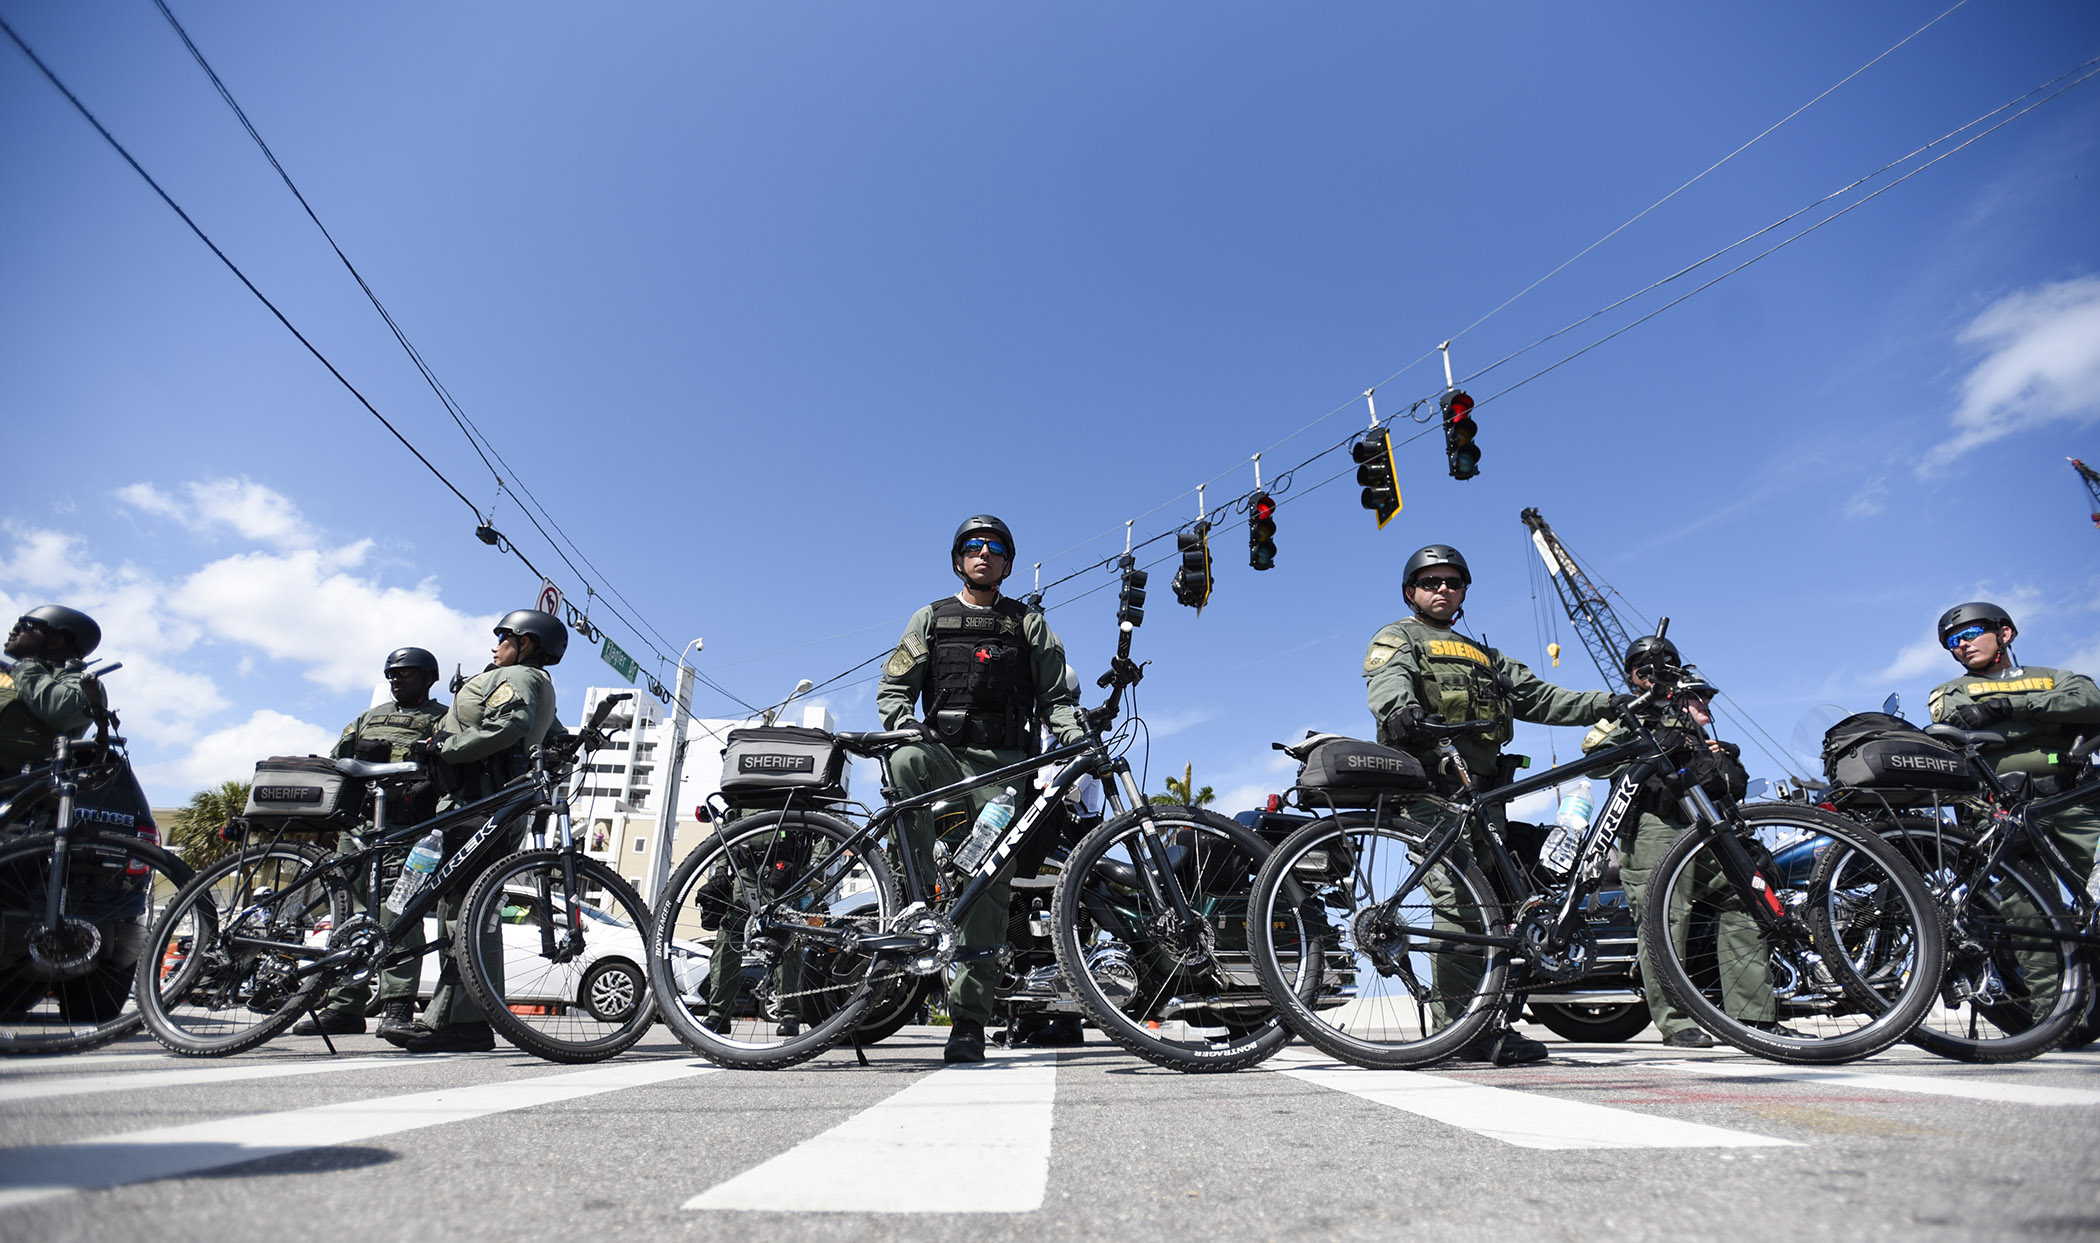 Palm Beach County Sheriff Office bicycle deputies are lined up at the corner of Southern Boulevard and South Flagler Drive during the March for Our Lives demonstration in West Palm Beach, Fla., on Saturday, March 24, 2018.